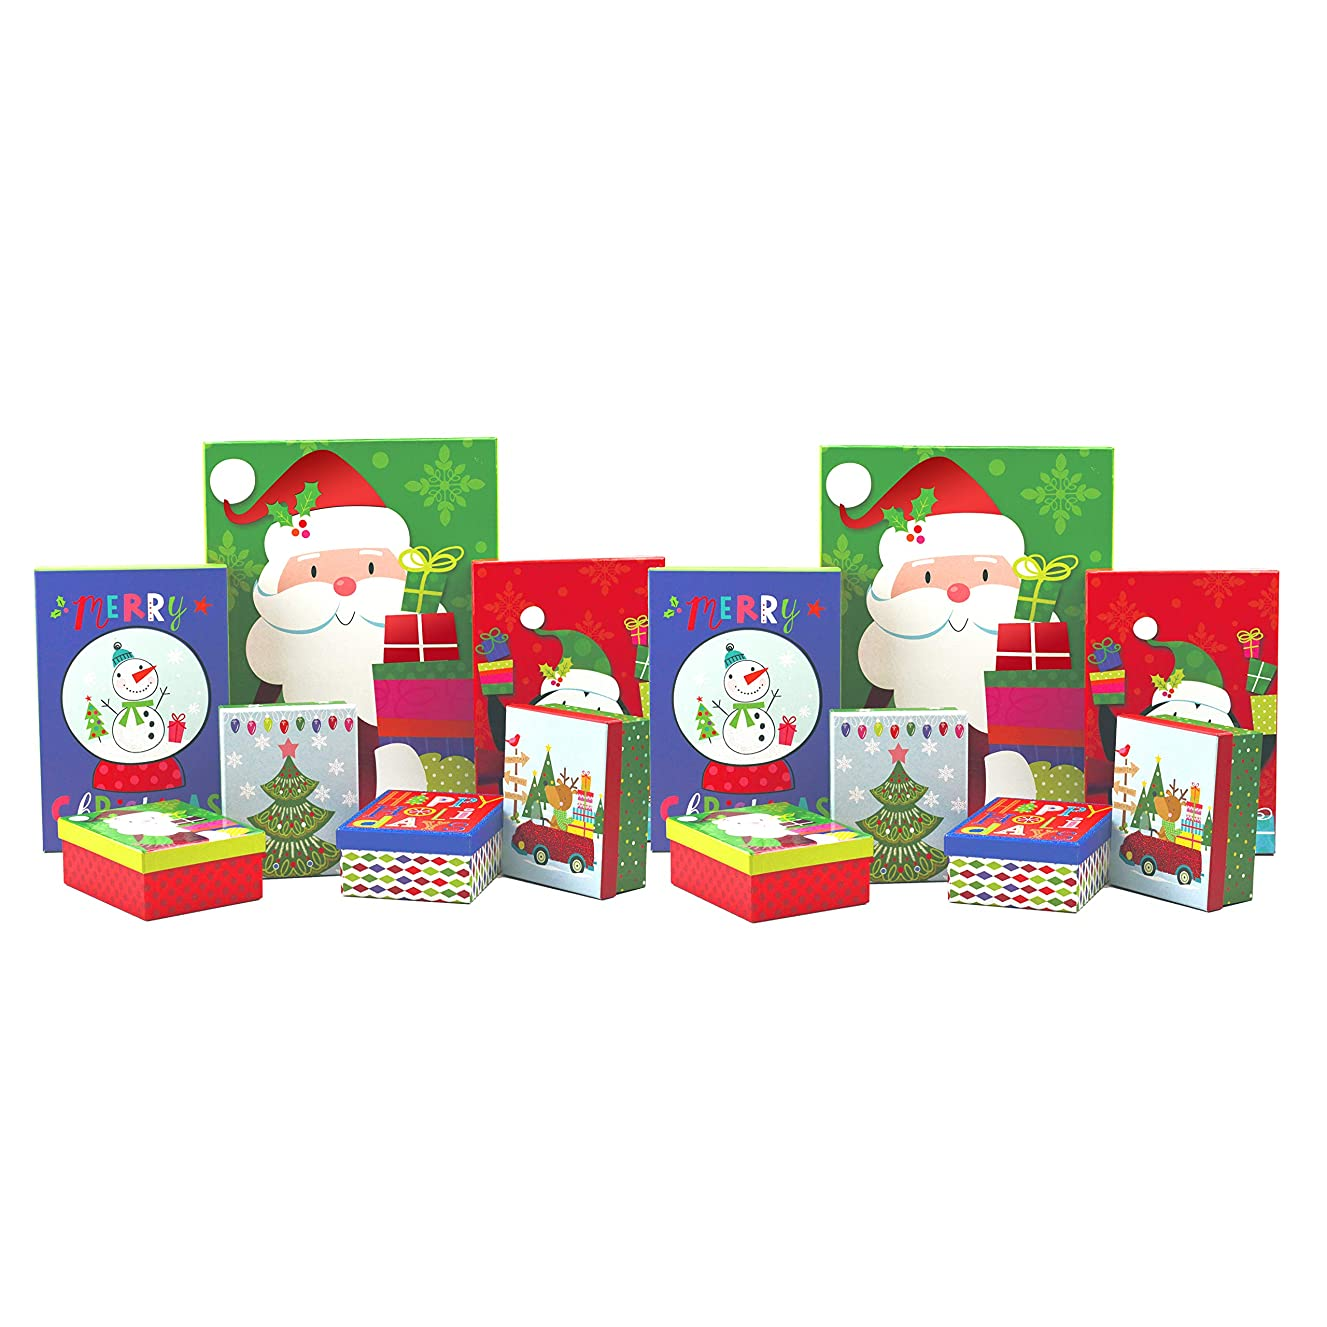 Christmas Gift Boxes with Lids - Reusable Holiday Gift Wrap Boxes for Christmas Presents - Great for Christmas Decor or Ornament Storage Boxes - Bulk Set of 14 Boxes